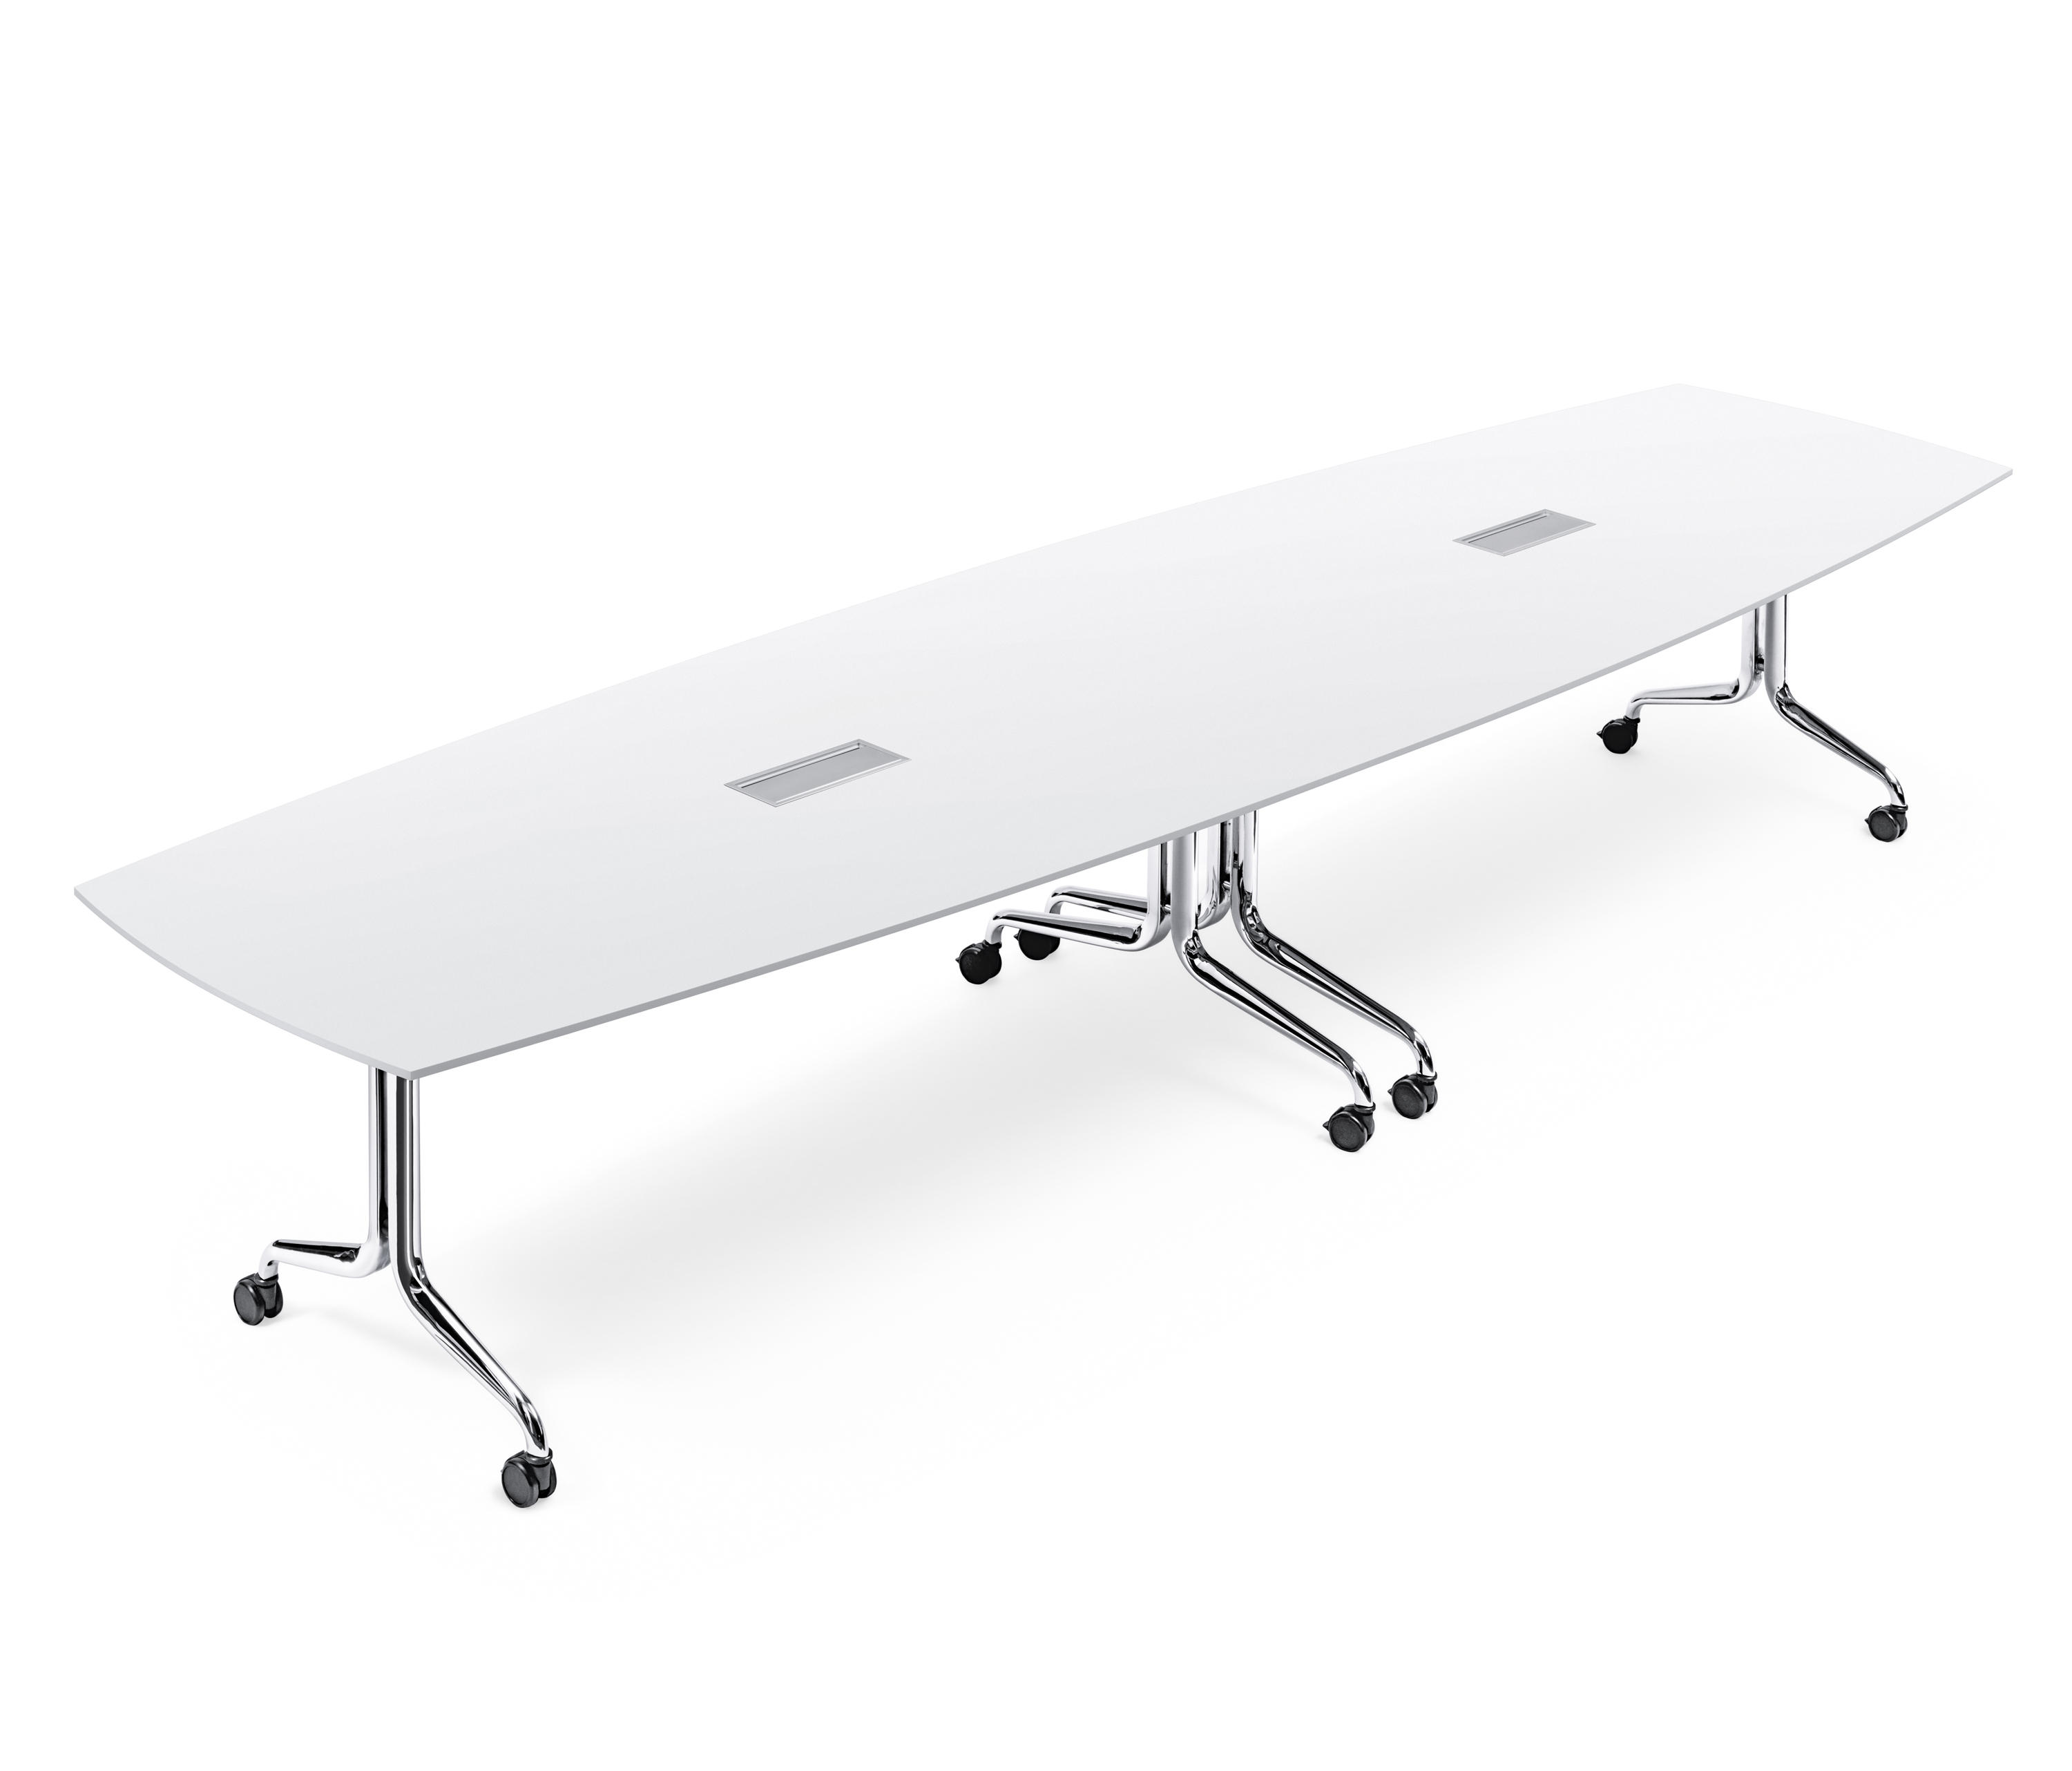 Büromöbel weiß chrom  NESTYIS3 - Multipurpose tables from Interstuhl Büromöbel GmbH & Co ...